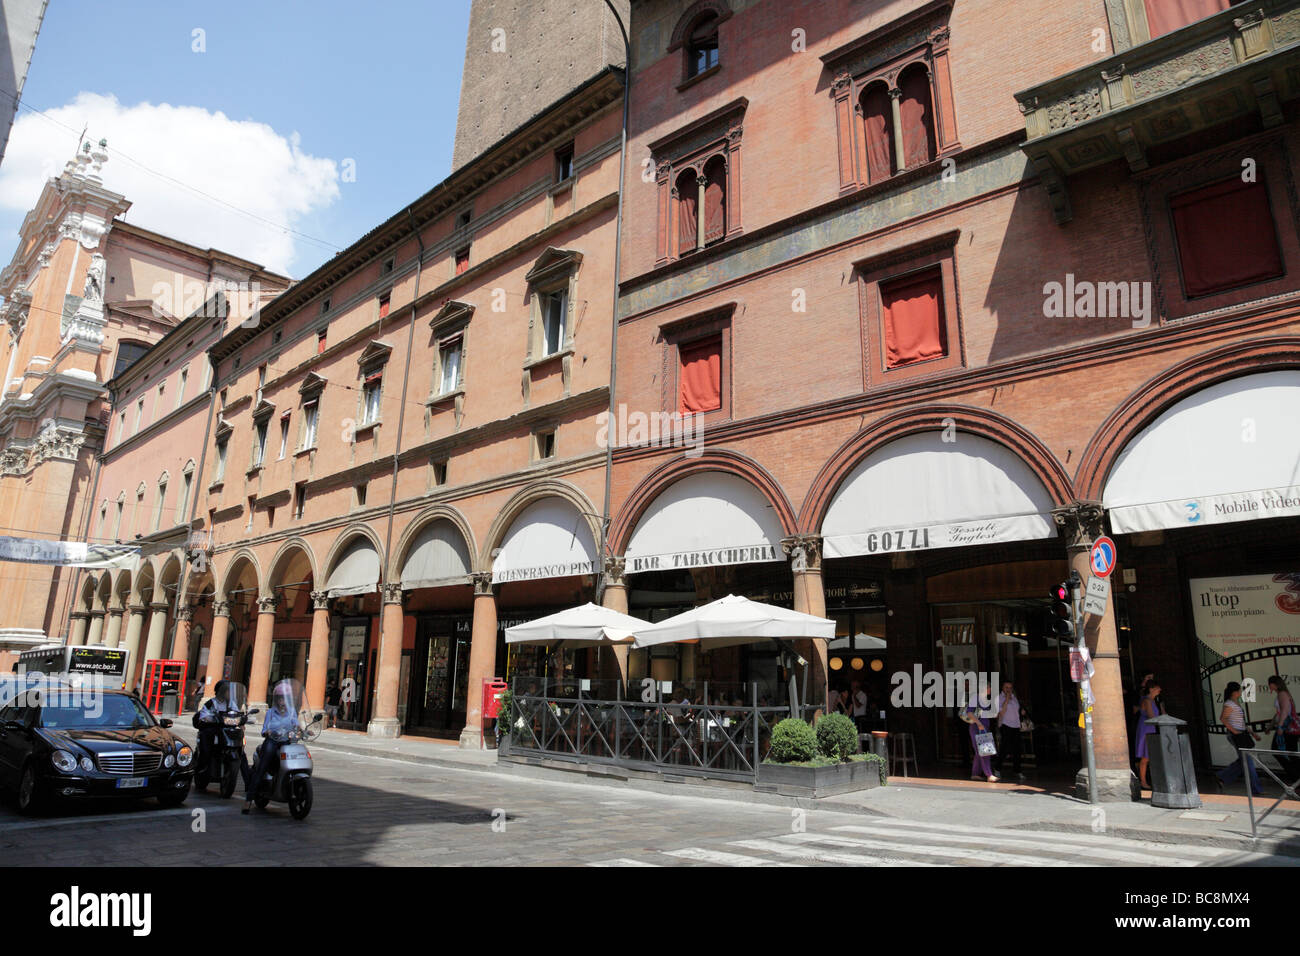 Bologna emilia romagna italy shopping arcade stock photos for Via indipendenza 69 bologna